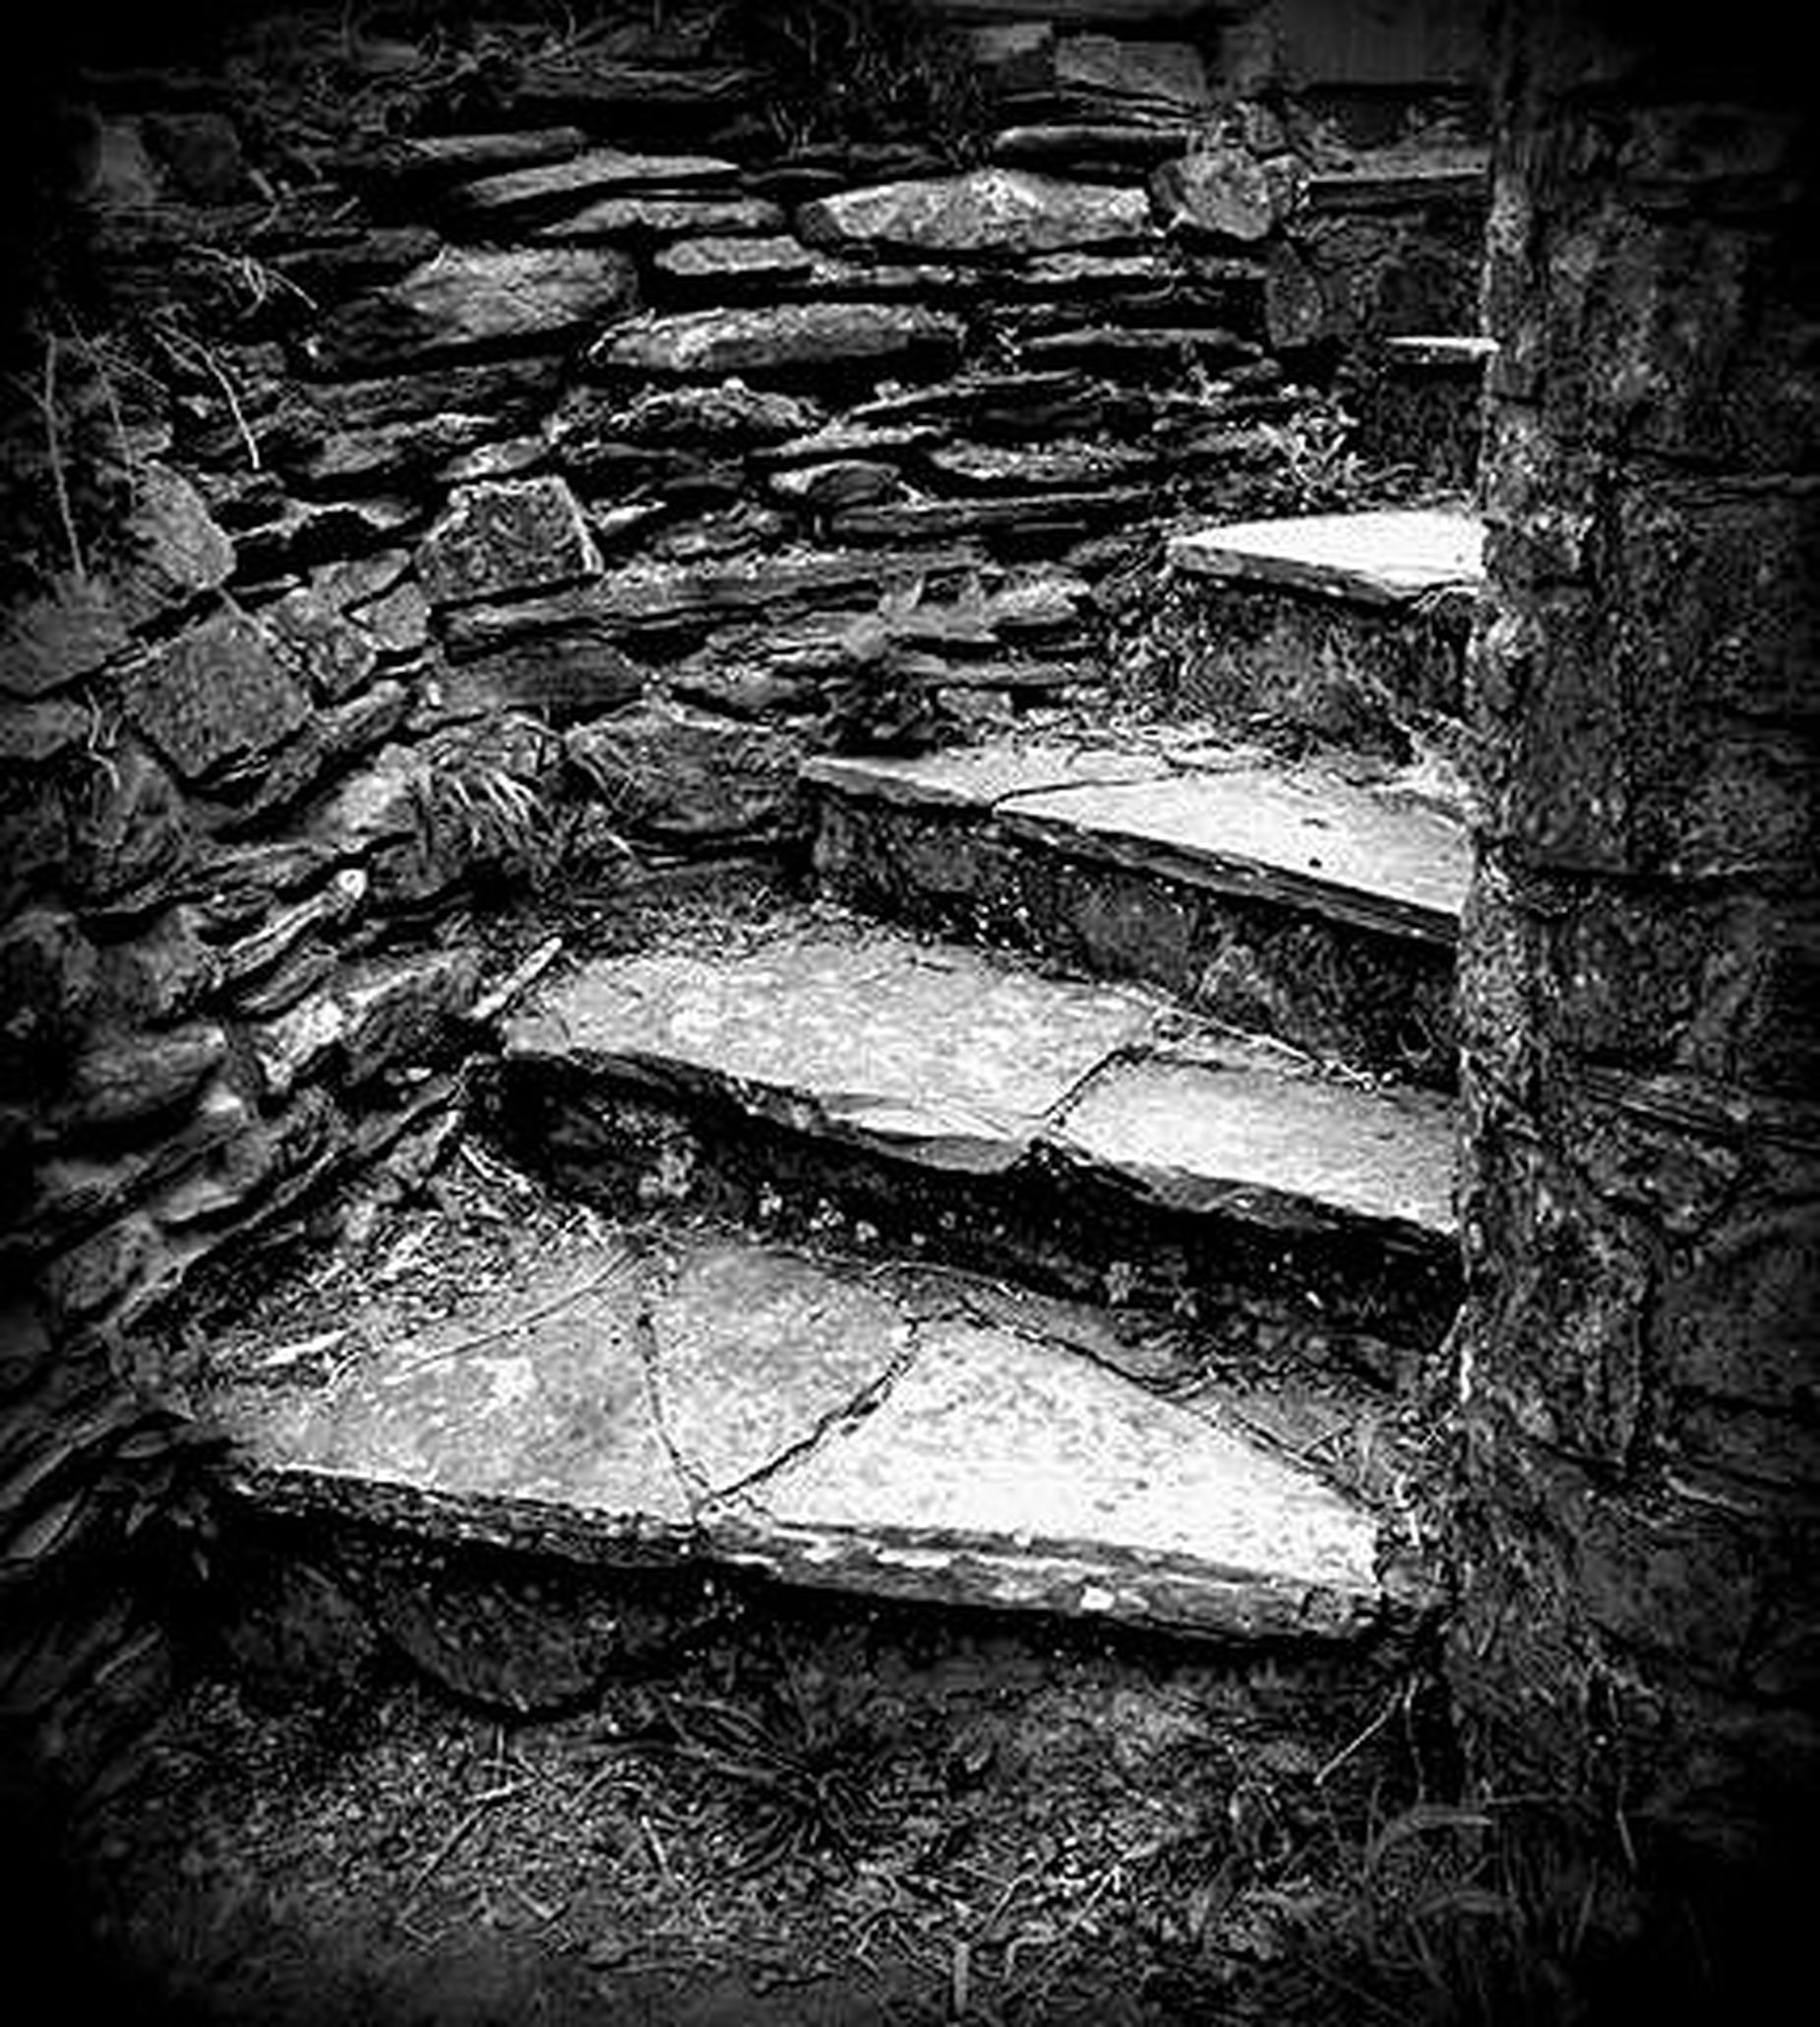 Bw_collection Stairs